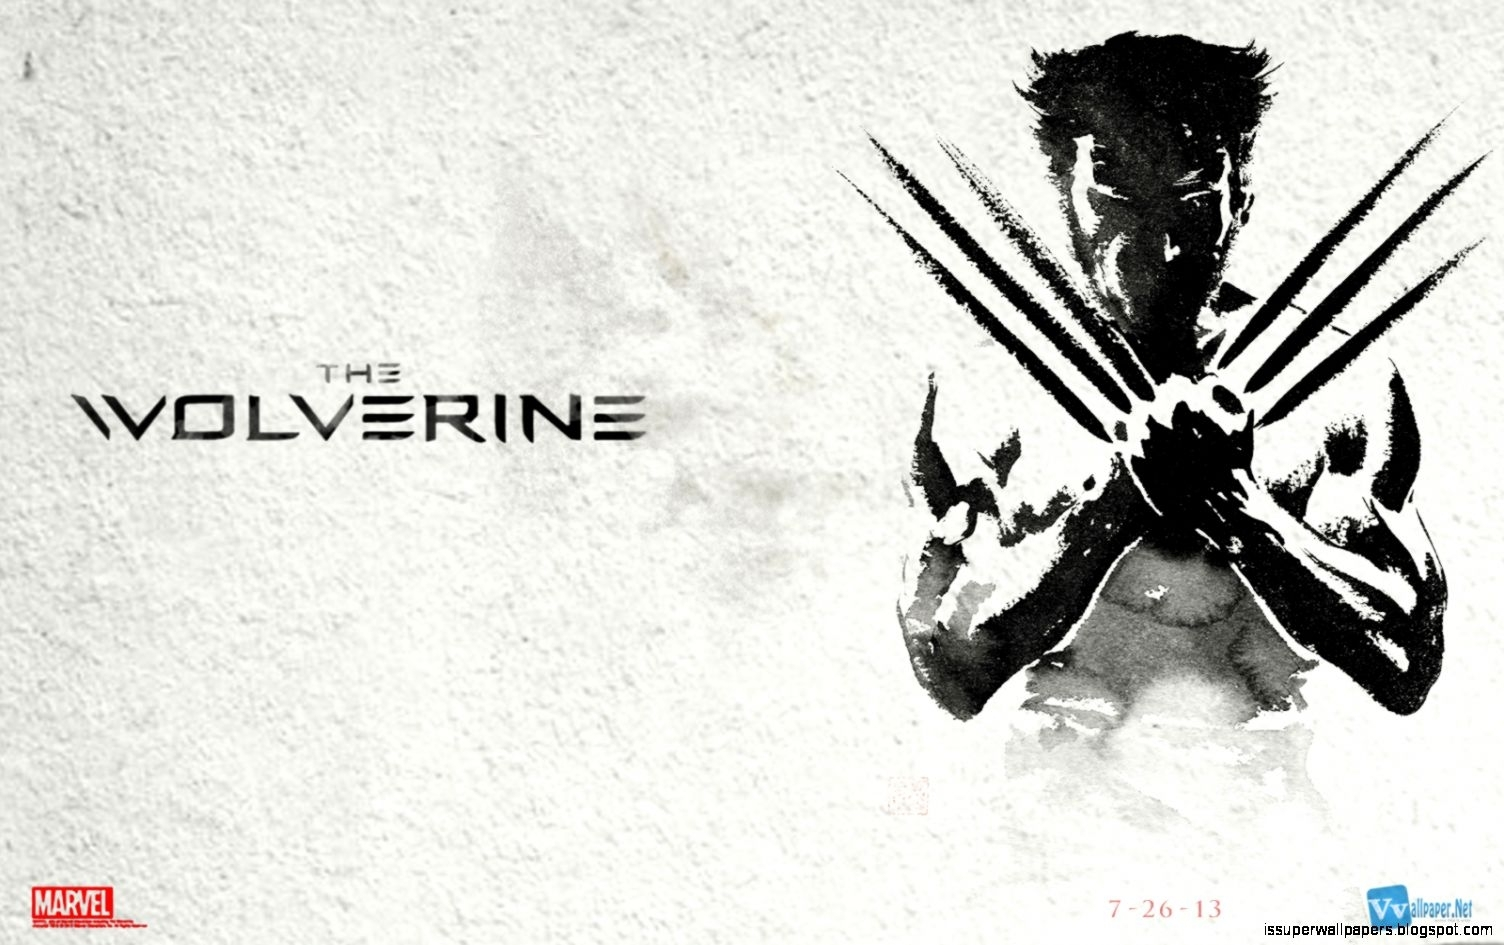 the wolverine movie wallpaper hd | super wallpapers